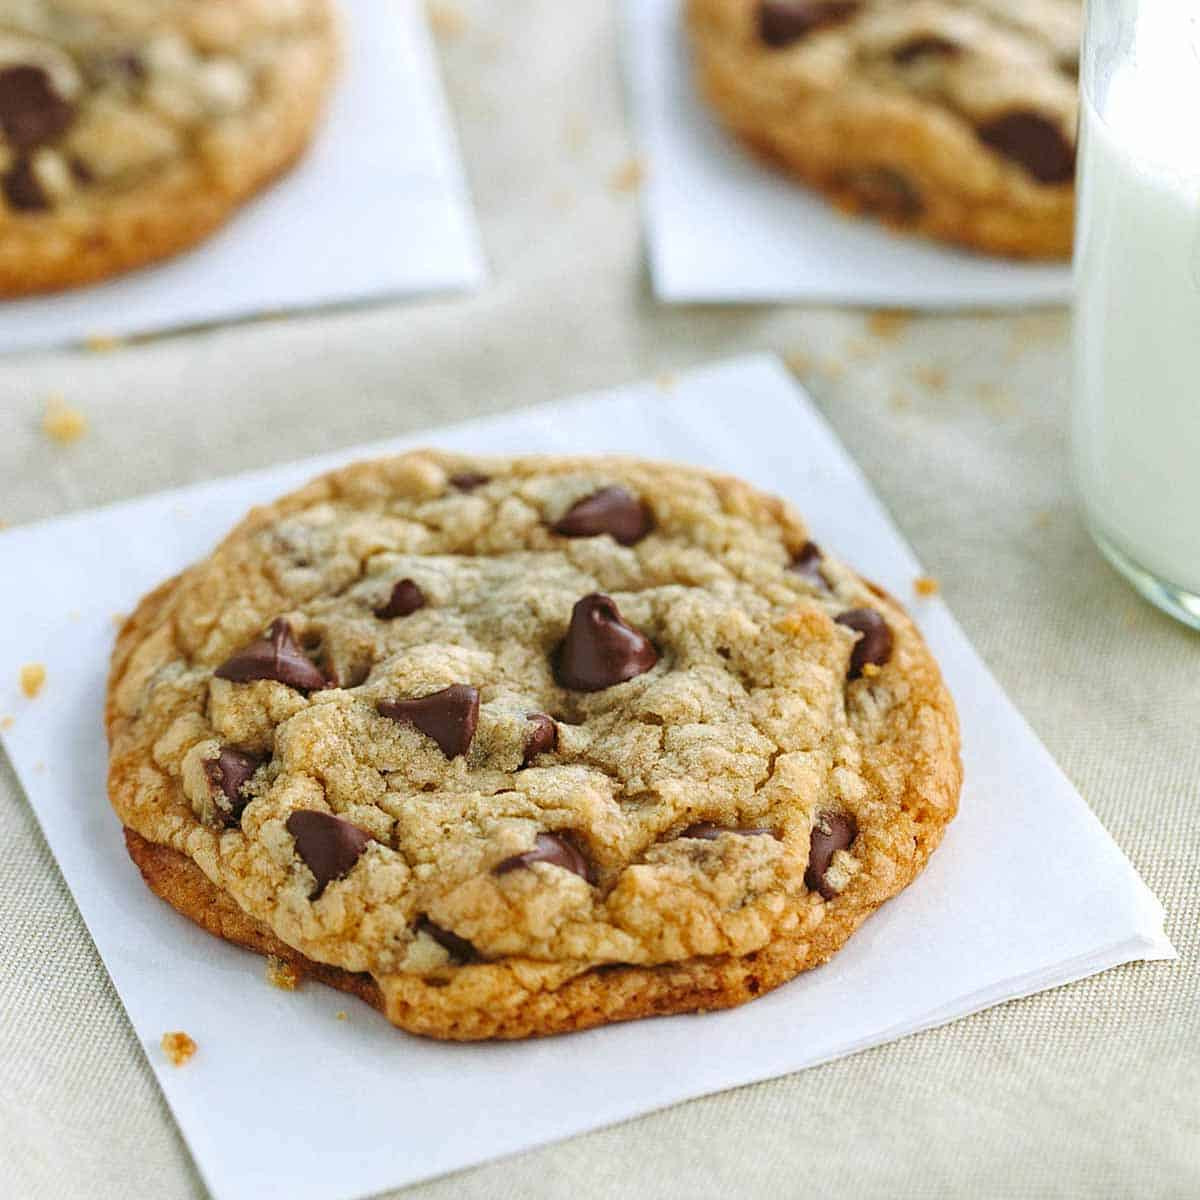 Chewy Chocolate Chip Cookies Recipe  The Best Chewy Chocolate Chip Cookies Recipe